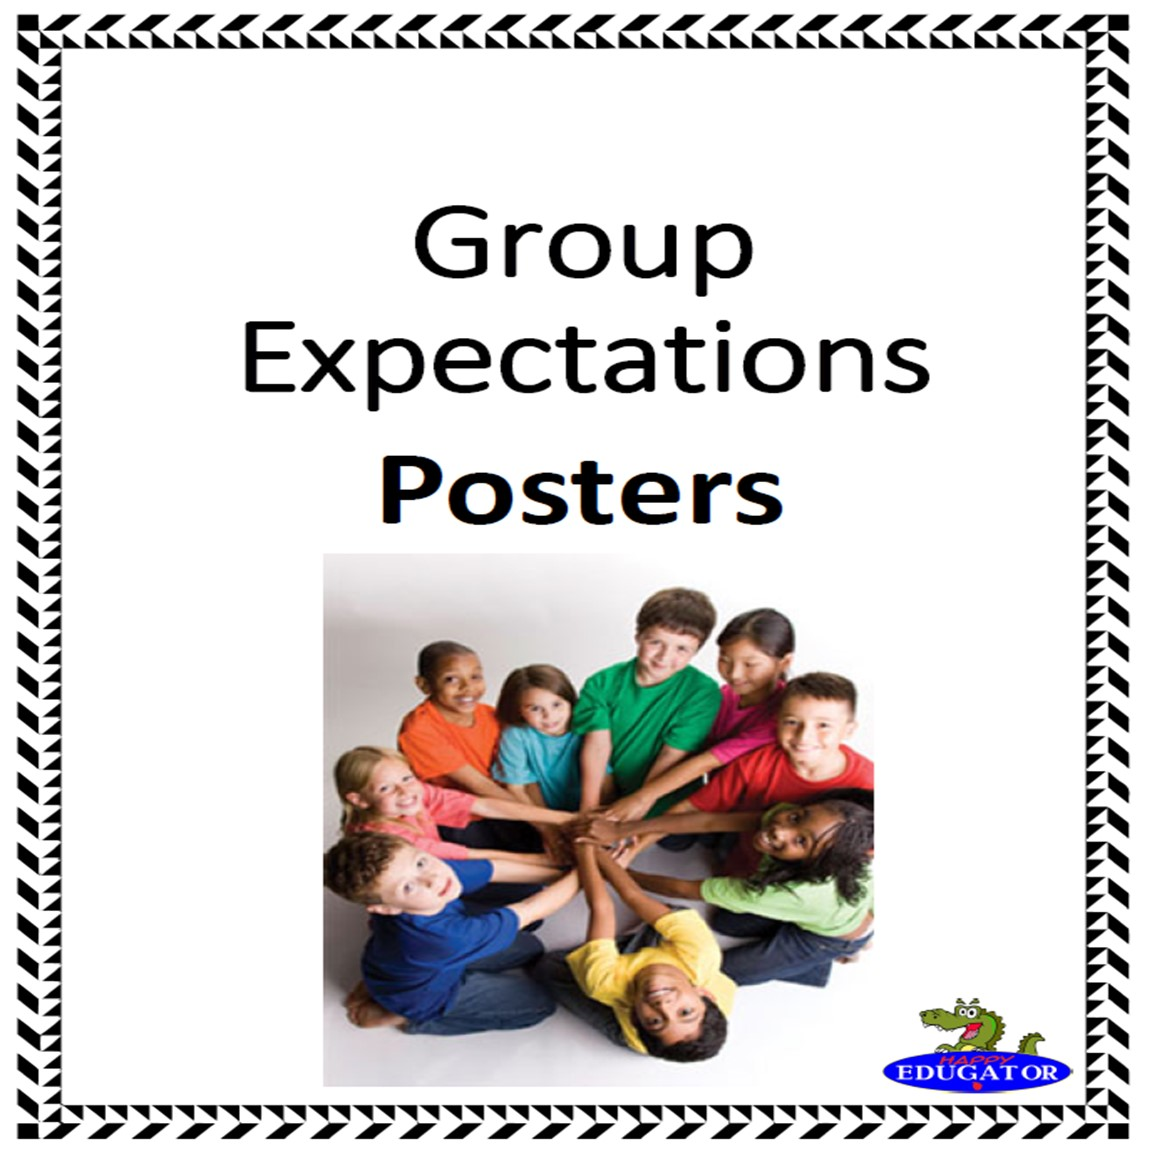 Group Expectations - Back to School Posters